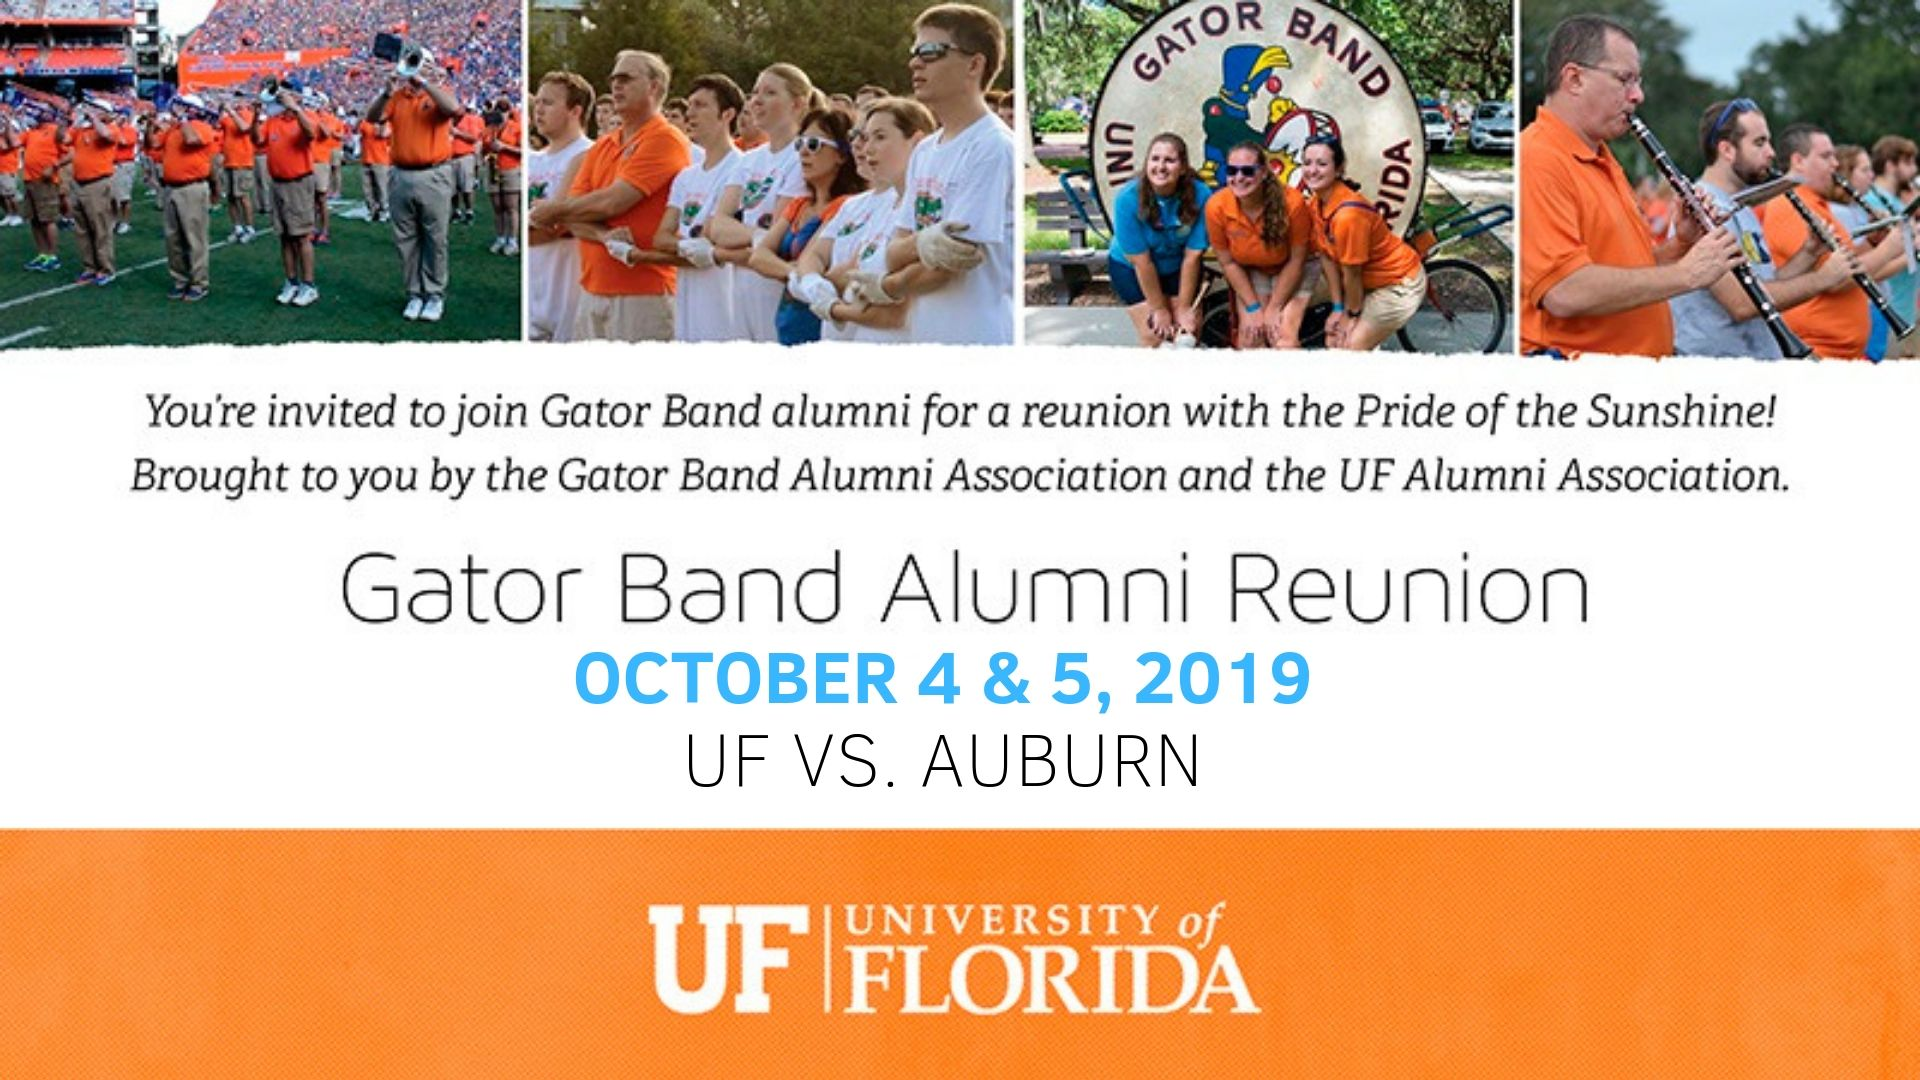 Gator Band Alumni Reunion 2019